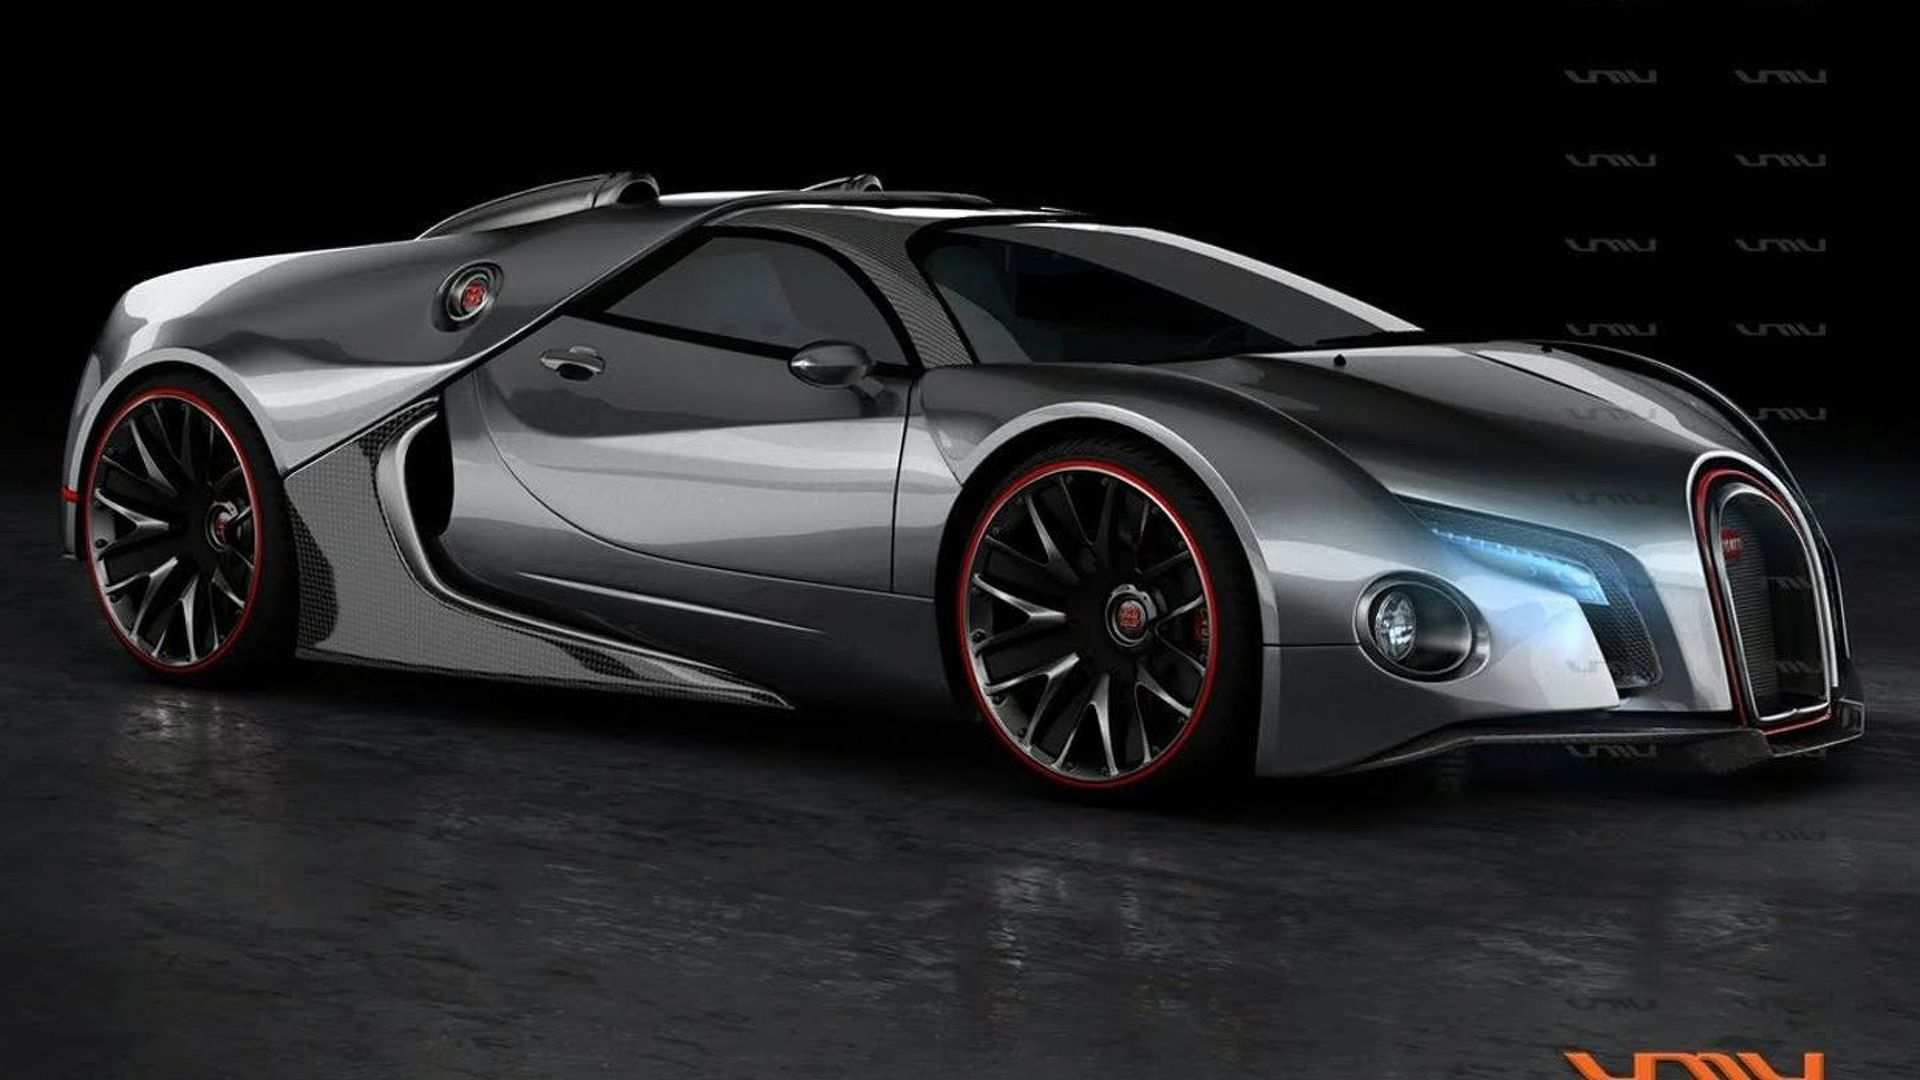 46 Concept of Bugatti Concept 2020 Photos with Bugatti Concept 2020